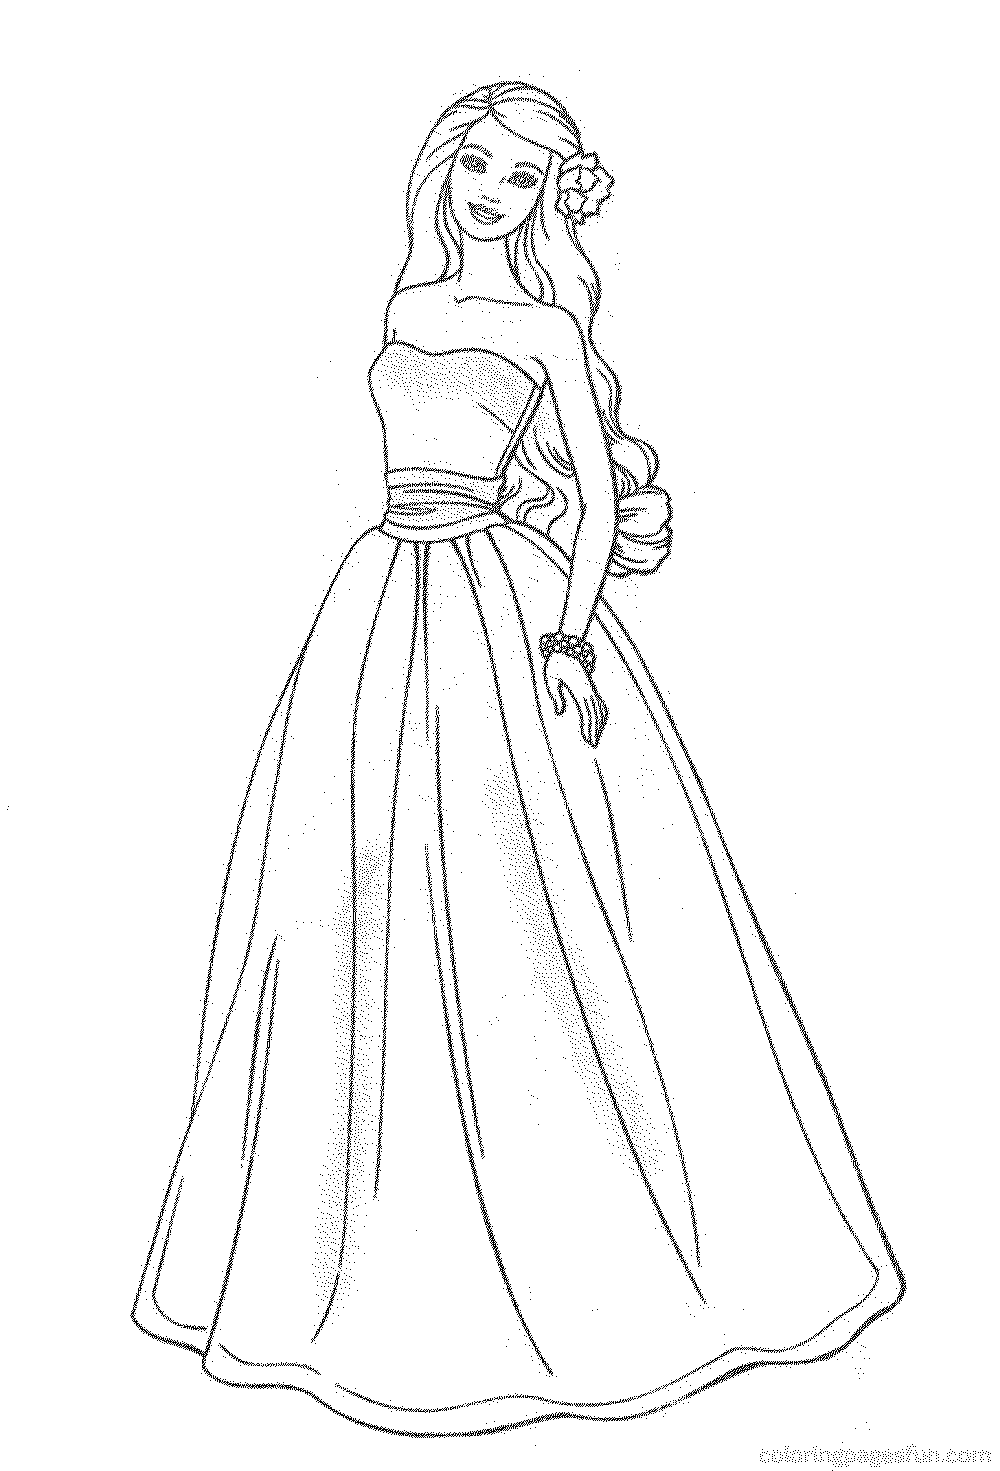 Barbie Coloring Pages Online Printable Kids Colouring Pages